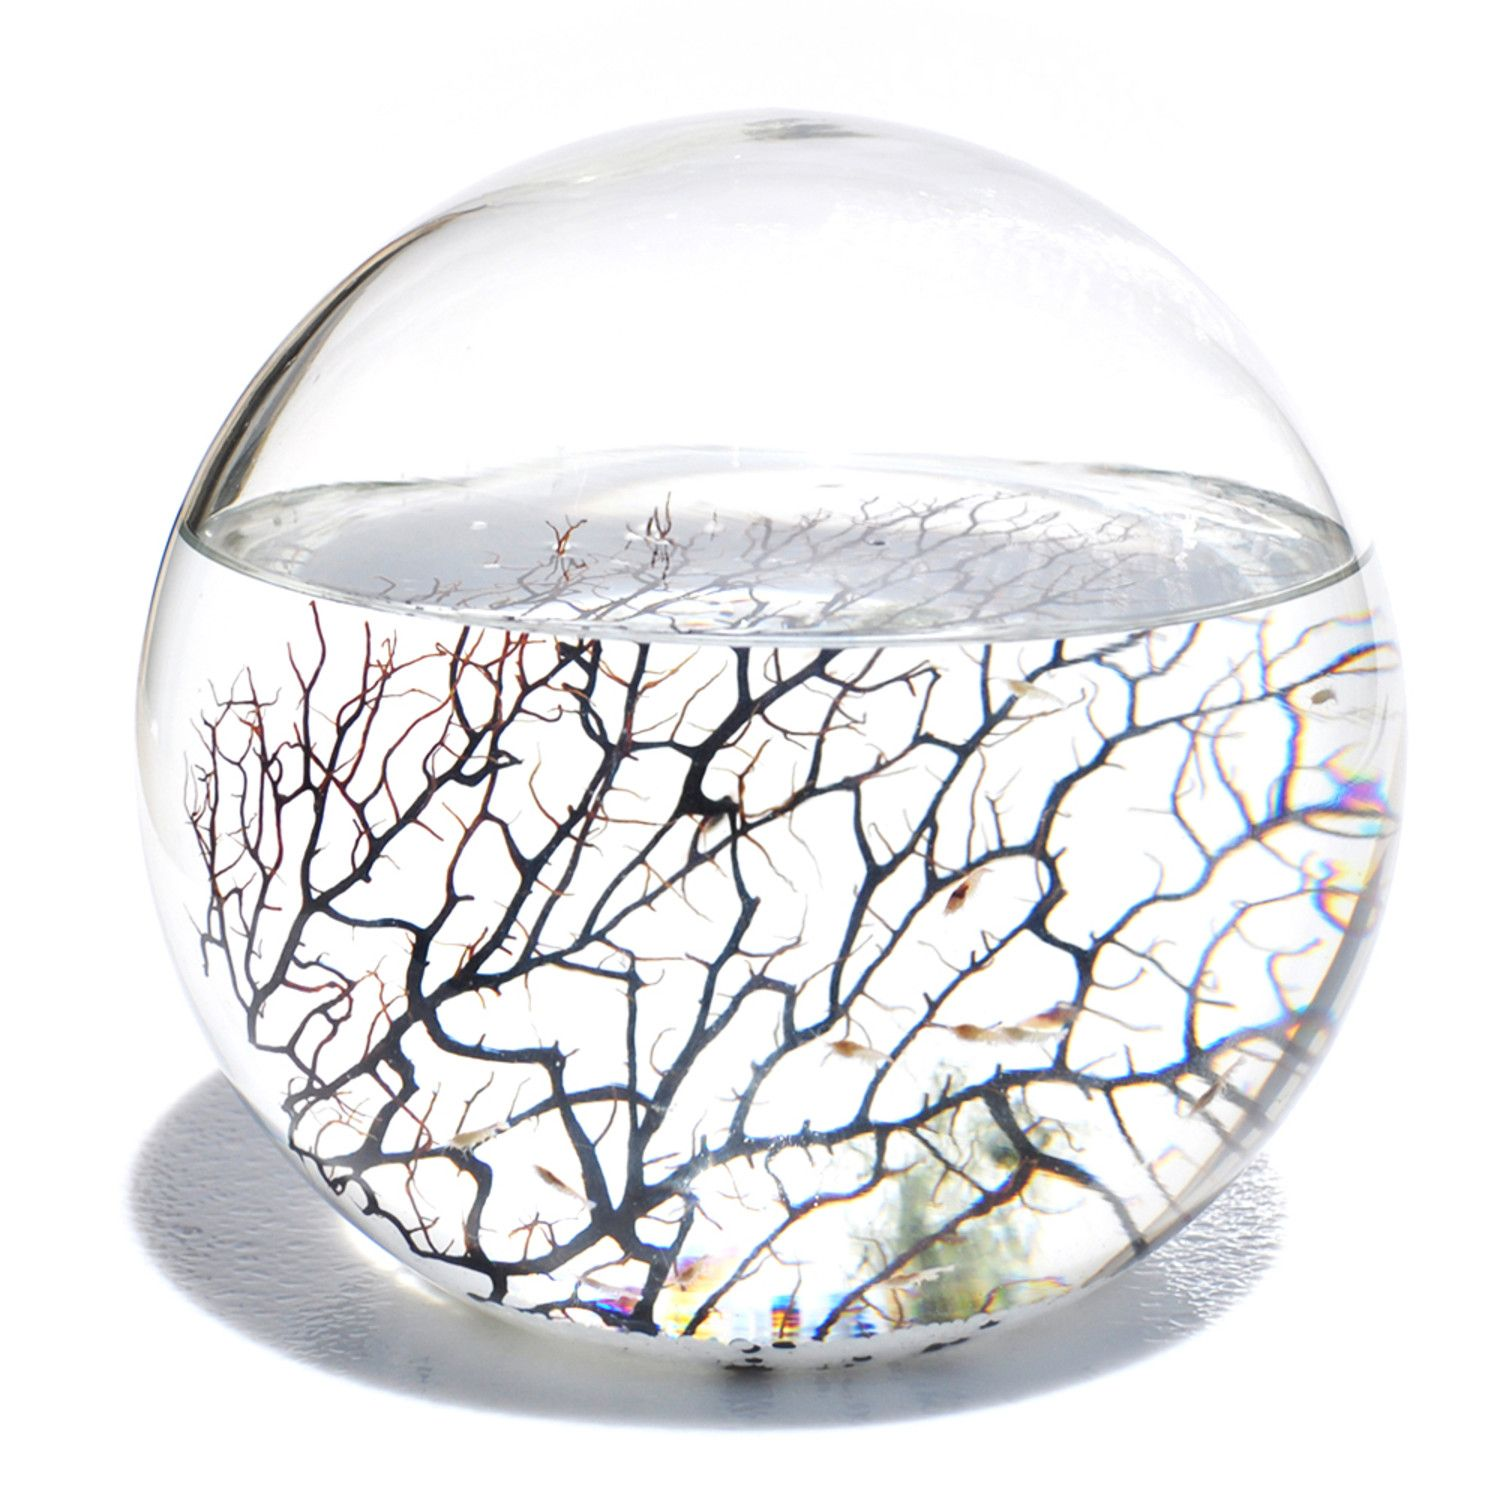 Within the EcoSphere globe are active micro-organisms, small shrimp, algae and bacteria, each existing in filtered sea water. Because the EcoSphere is a self-sustaining ecosystem, you never have to feed the life within. Because the living organisms within the EcoSphere utilize their resources without overpopulating or contaminating their environment, the EcoSphere requires virtually no maintenance.